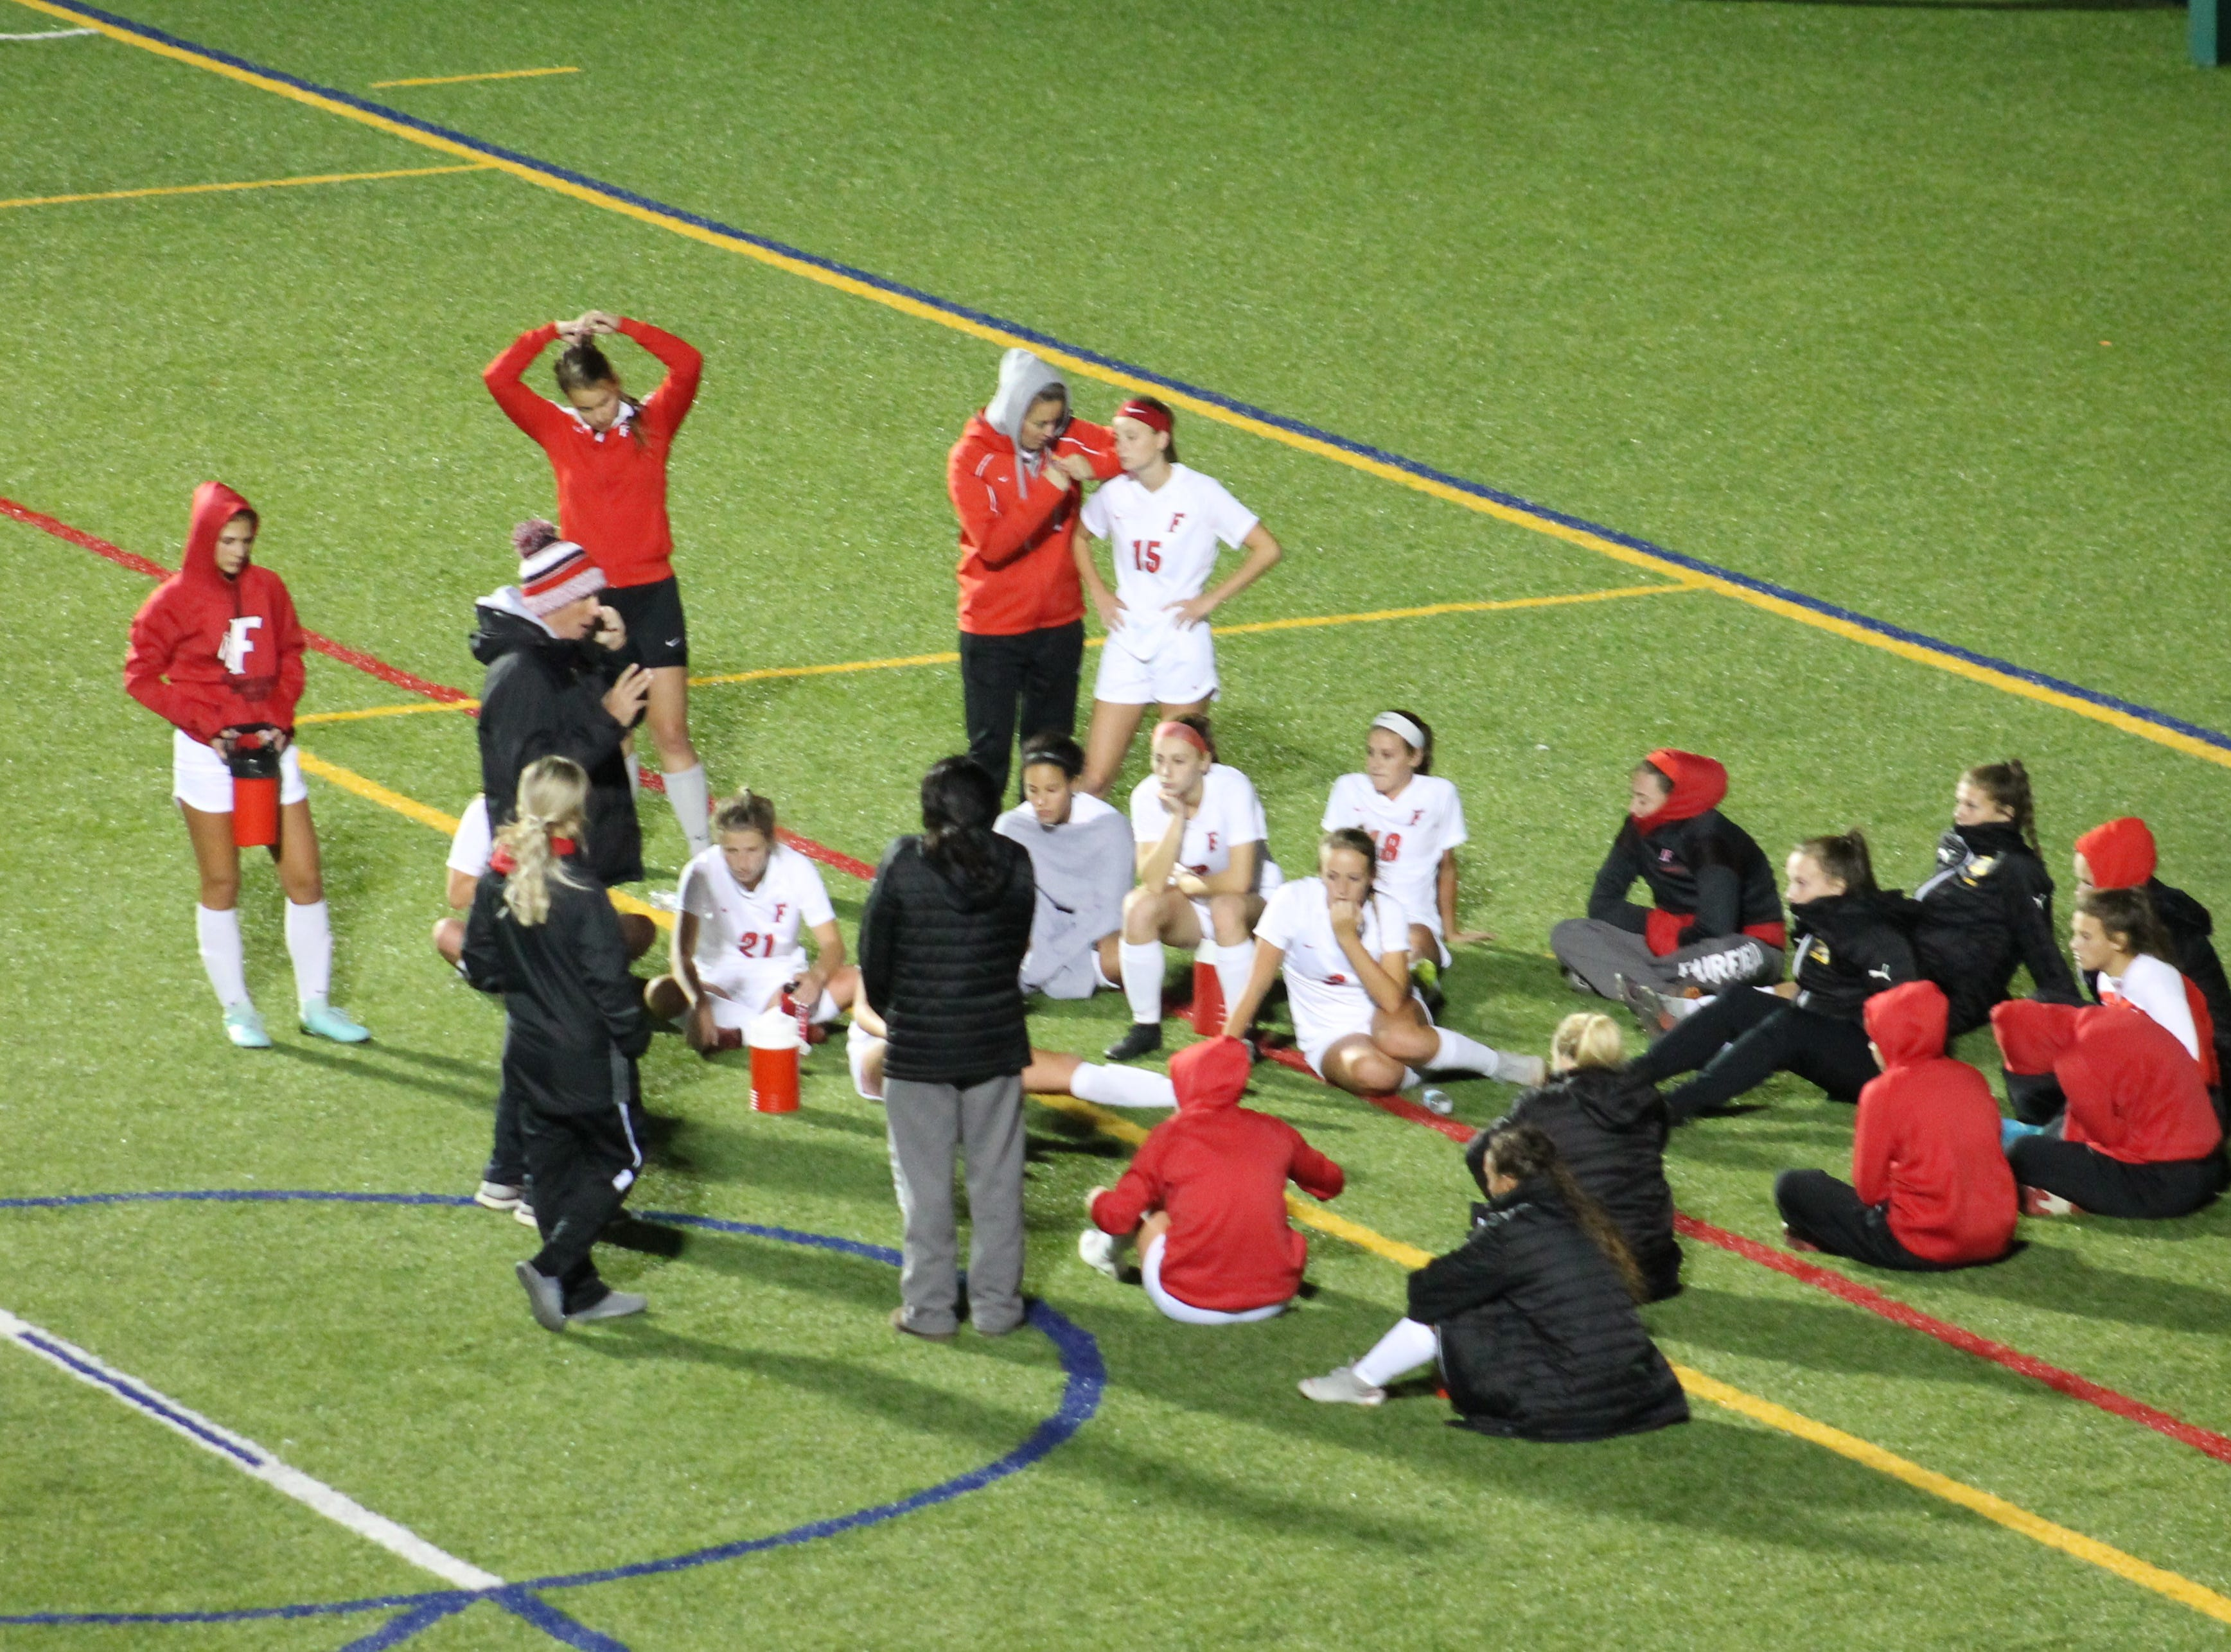 Fairfield tries to regroup at halftime of their GMC match with Mason